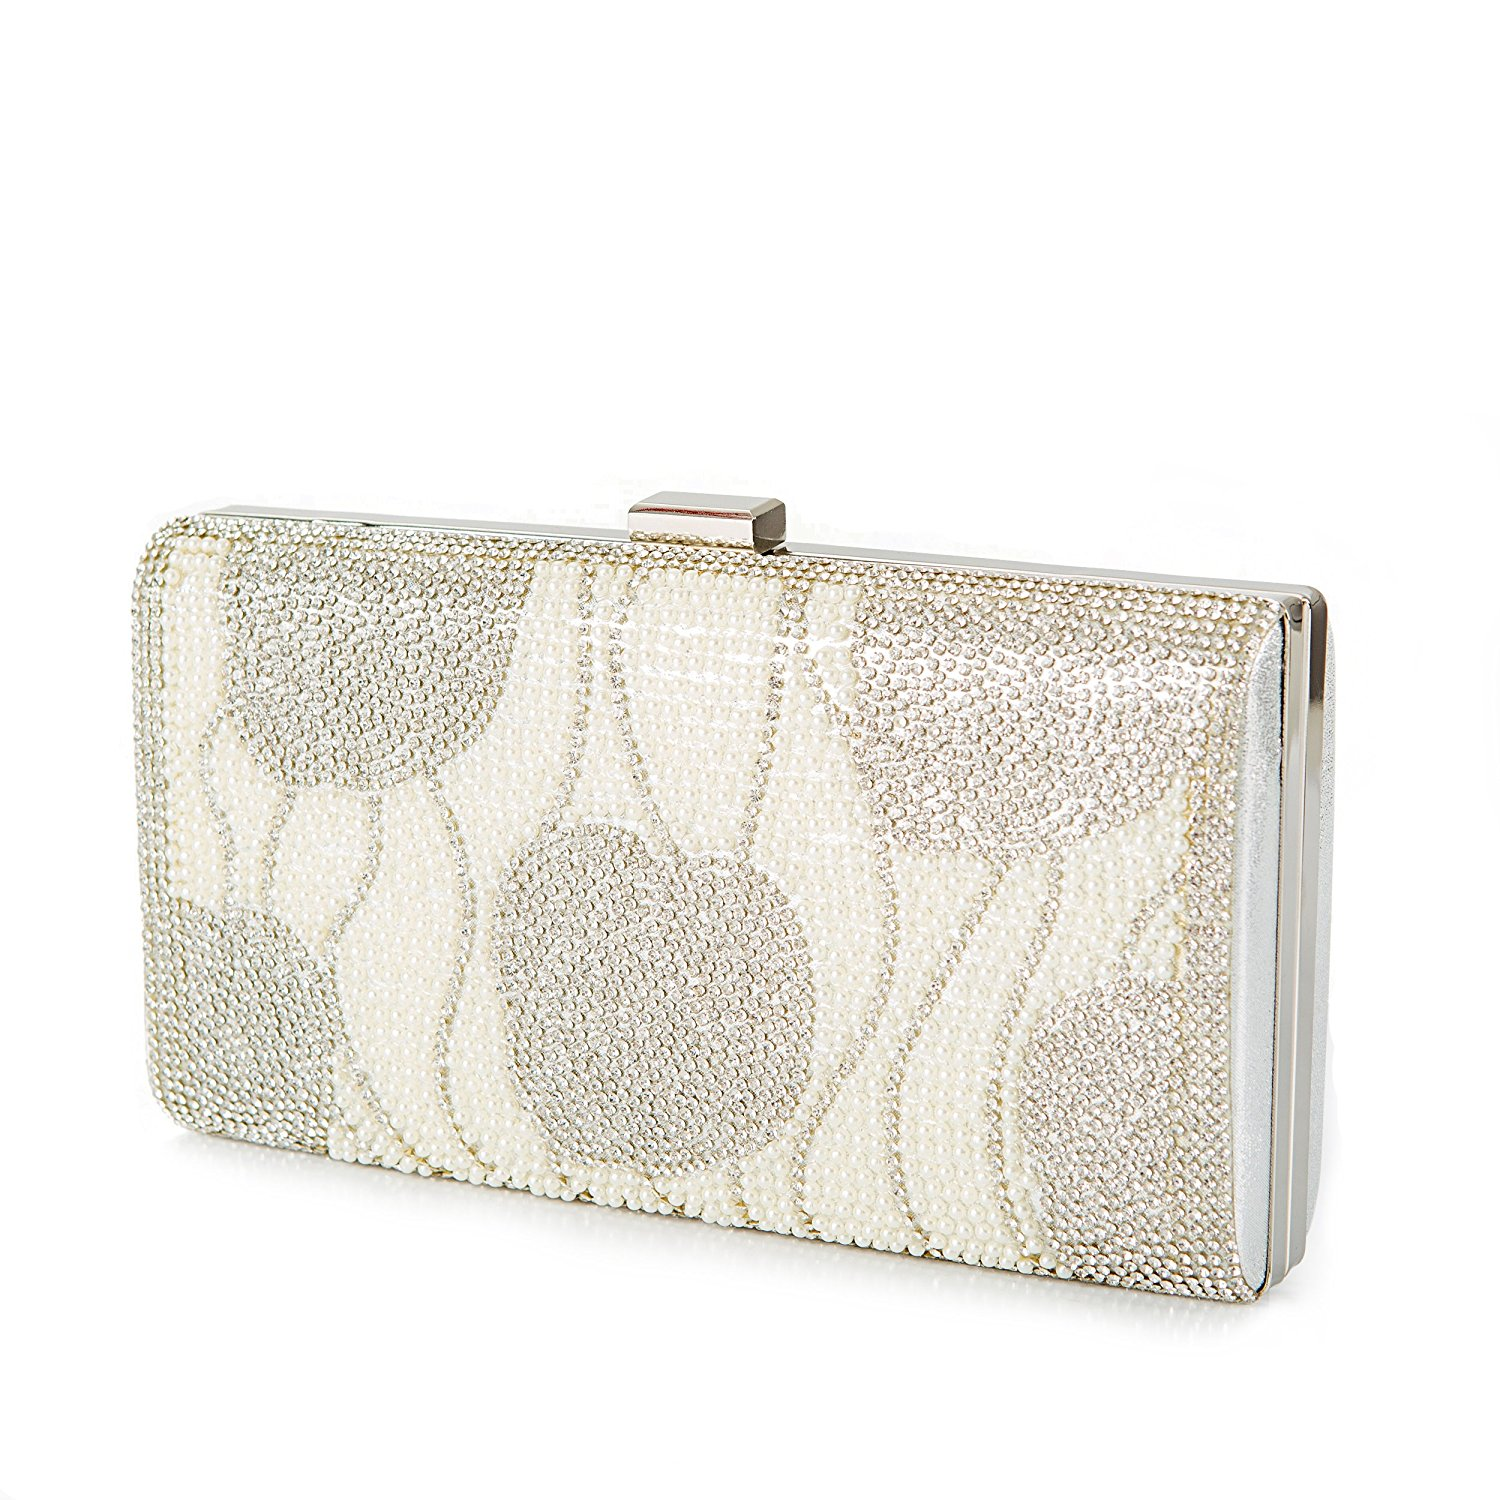 Silver Crystal Clutch Bridal Bag 51ae812684f86